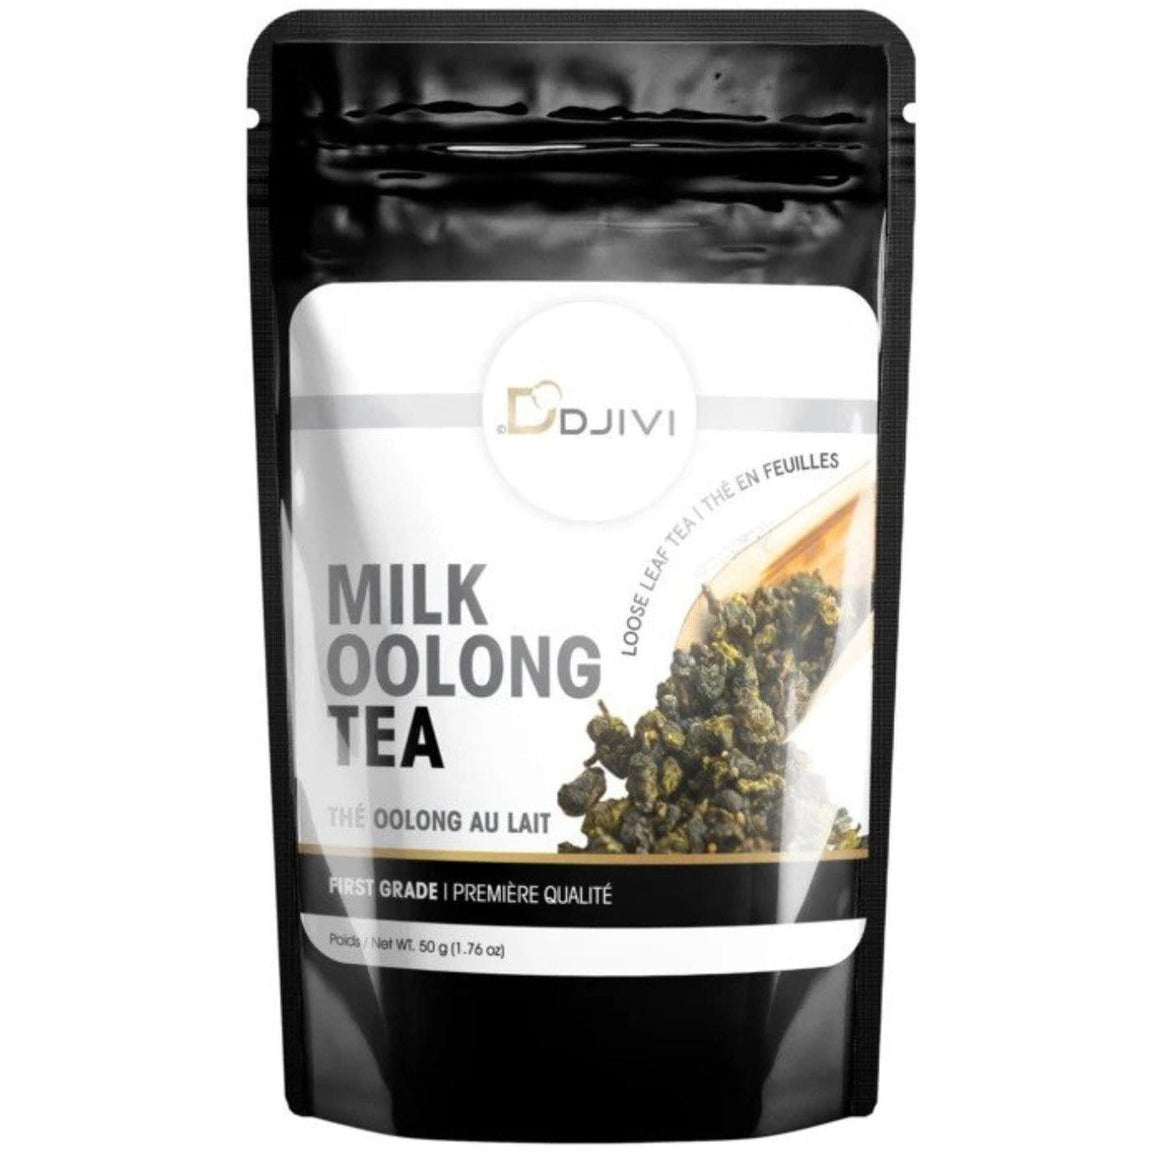 Milk Oolong Tea - DODJIVI